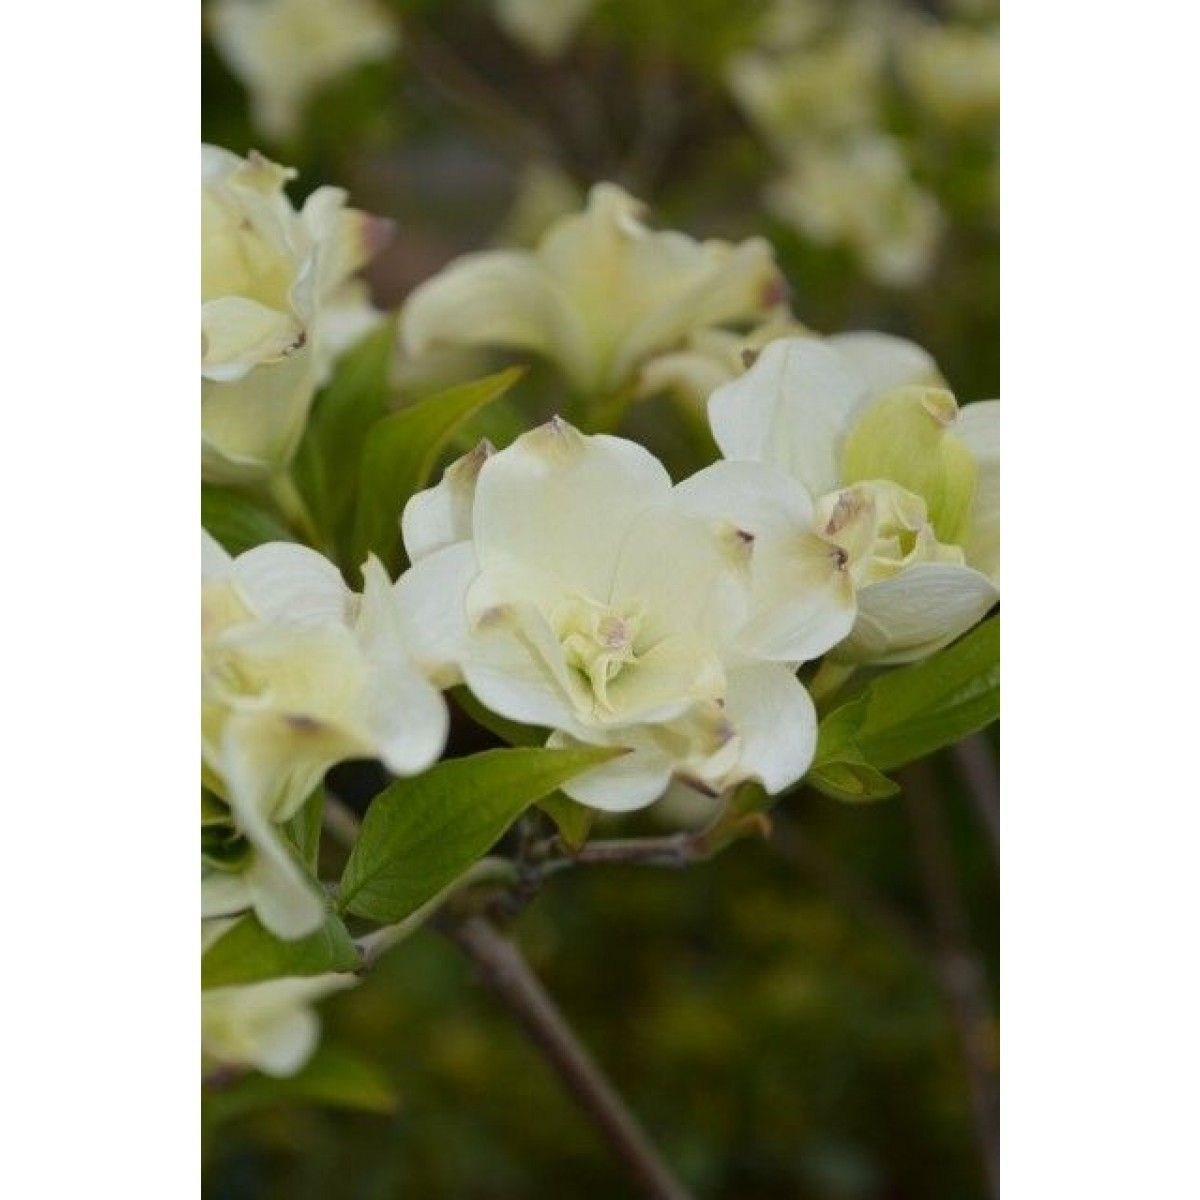 cornus_florida_eternal_flwr_-_may_4_2015-3_426x640_.jpg